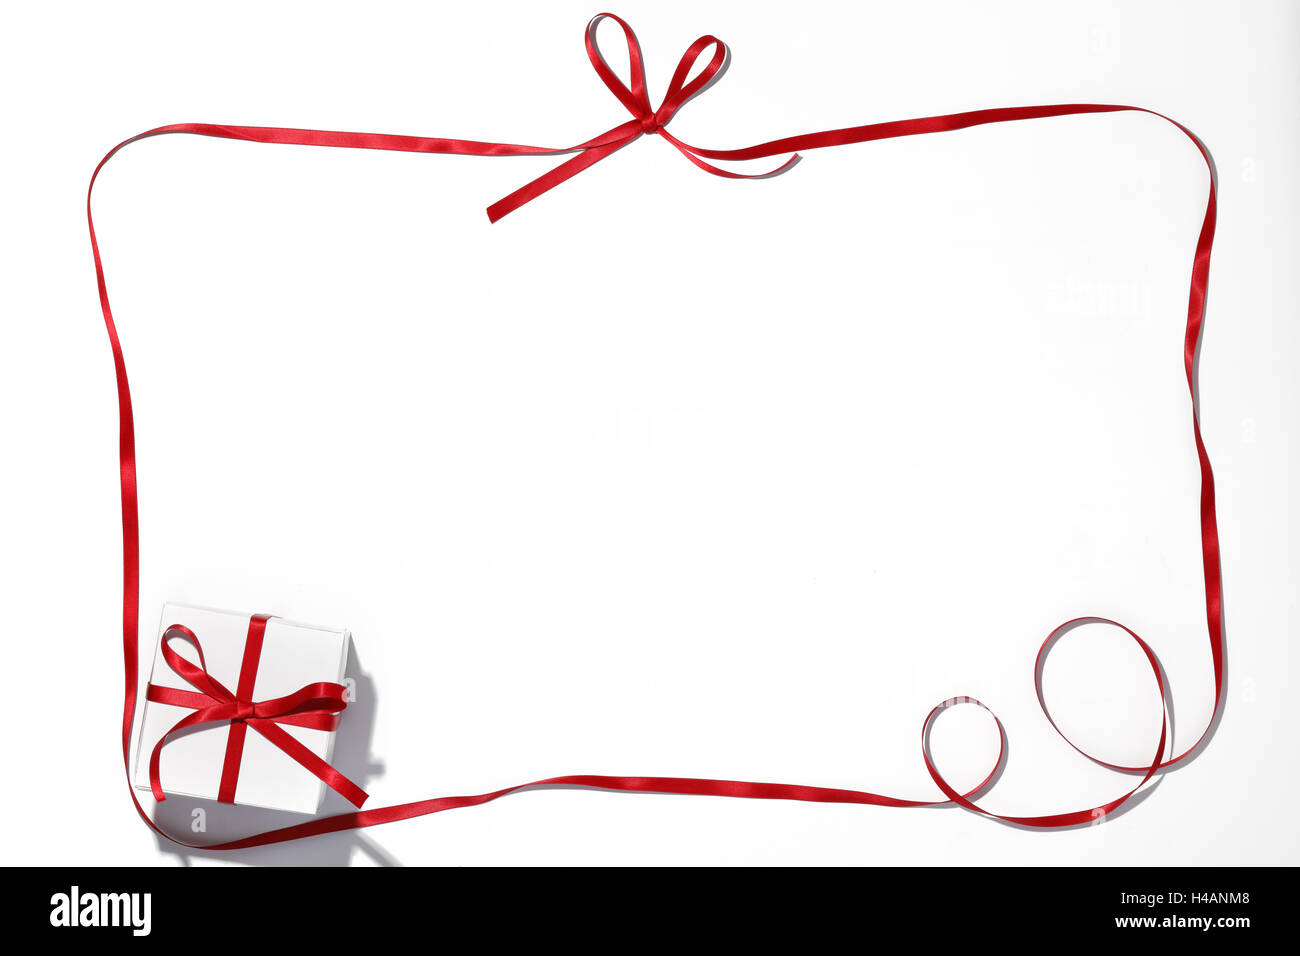 Red ribbon and gift box on white background - Stock Image